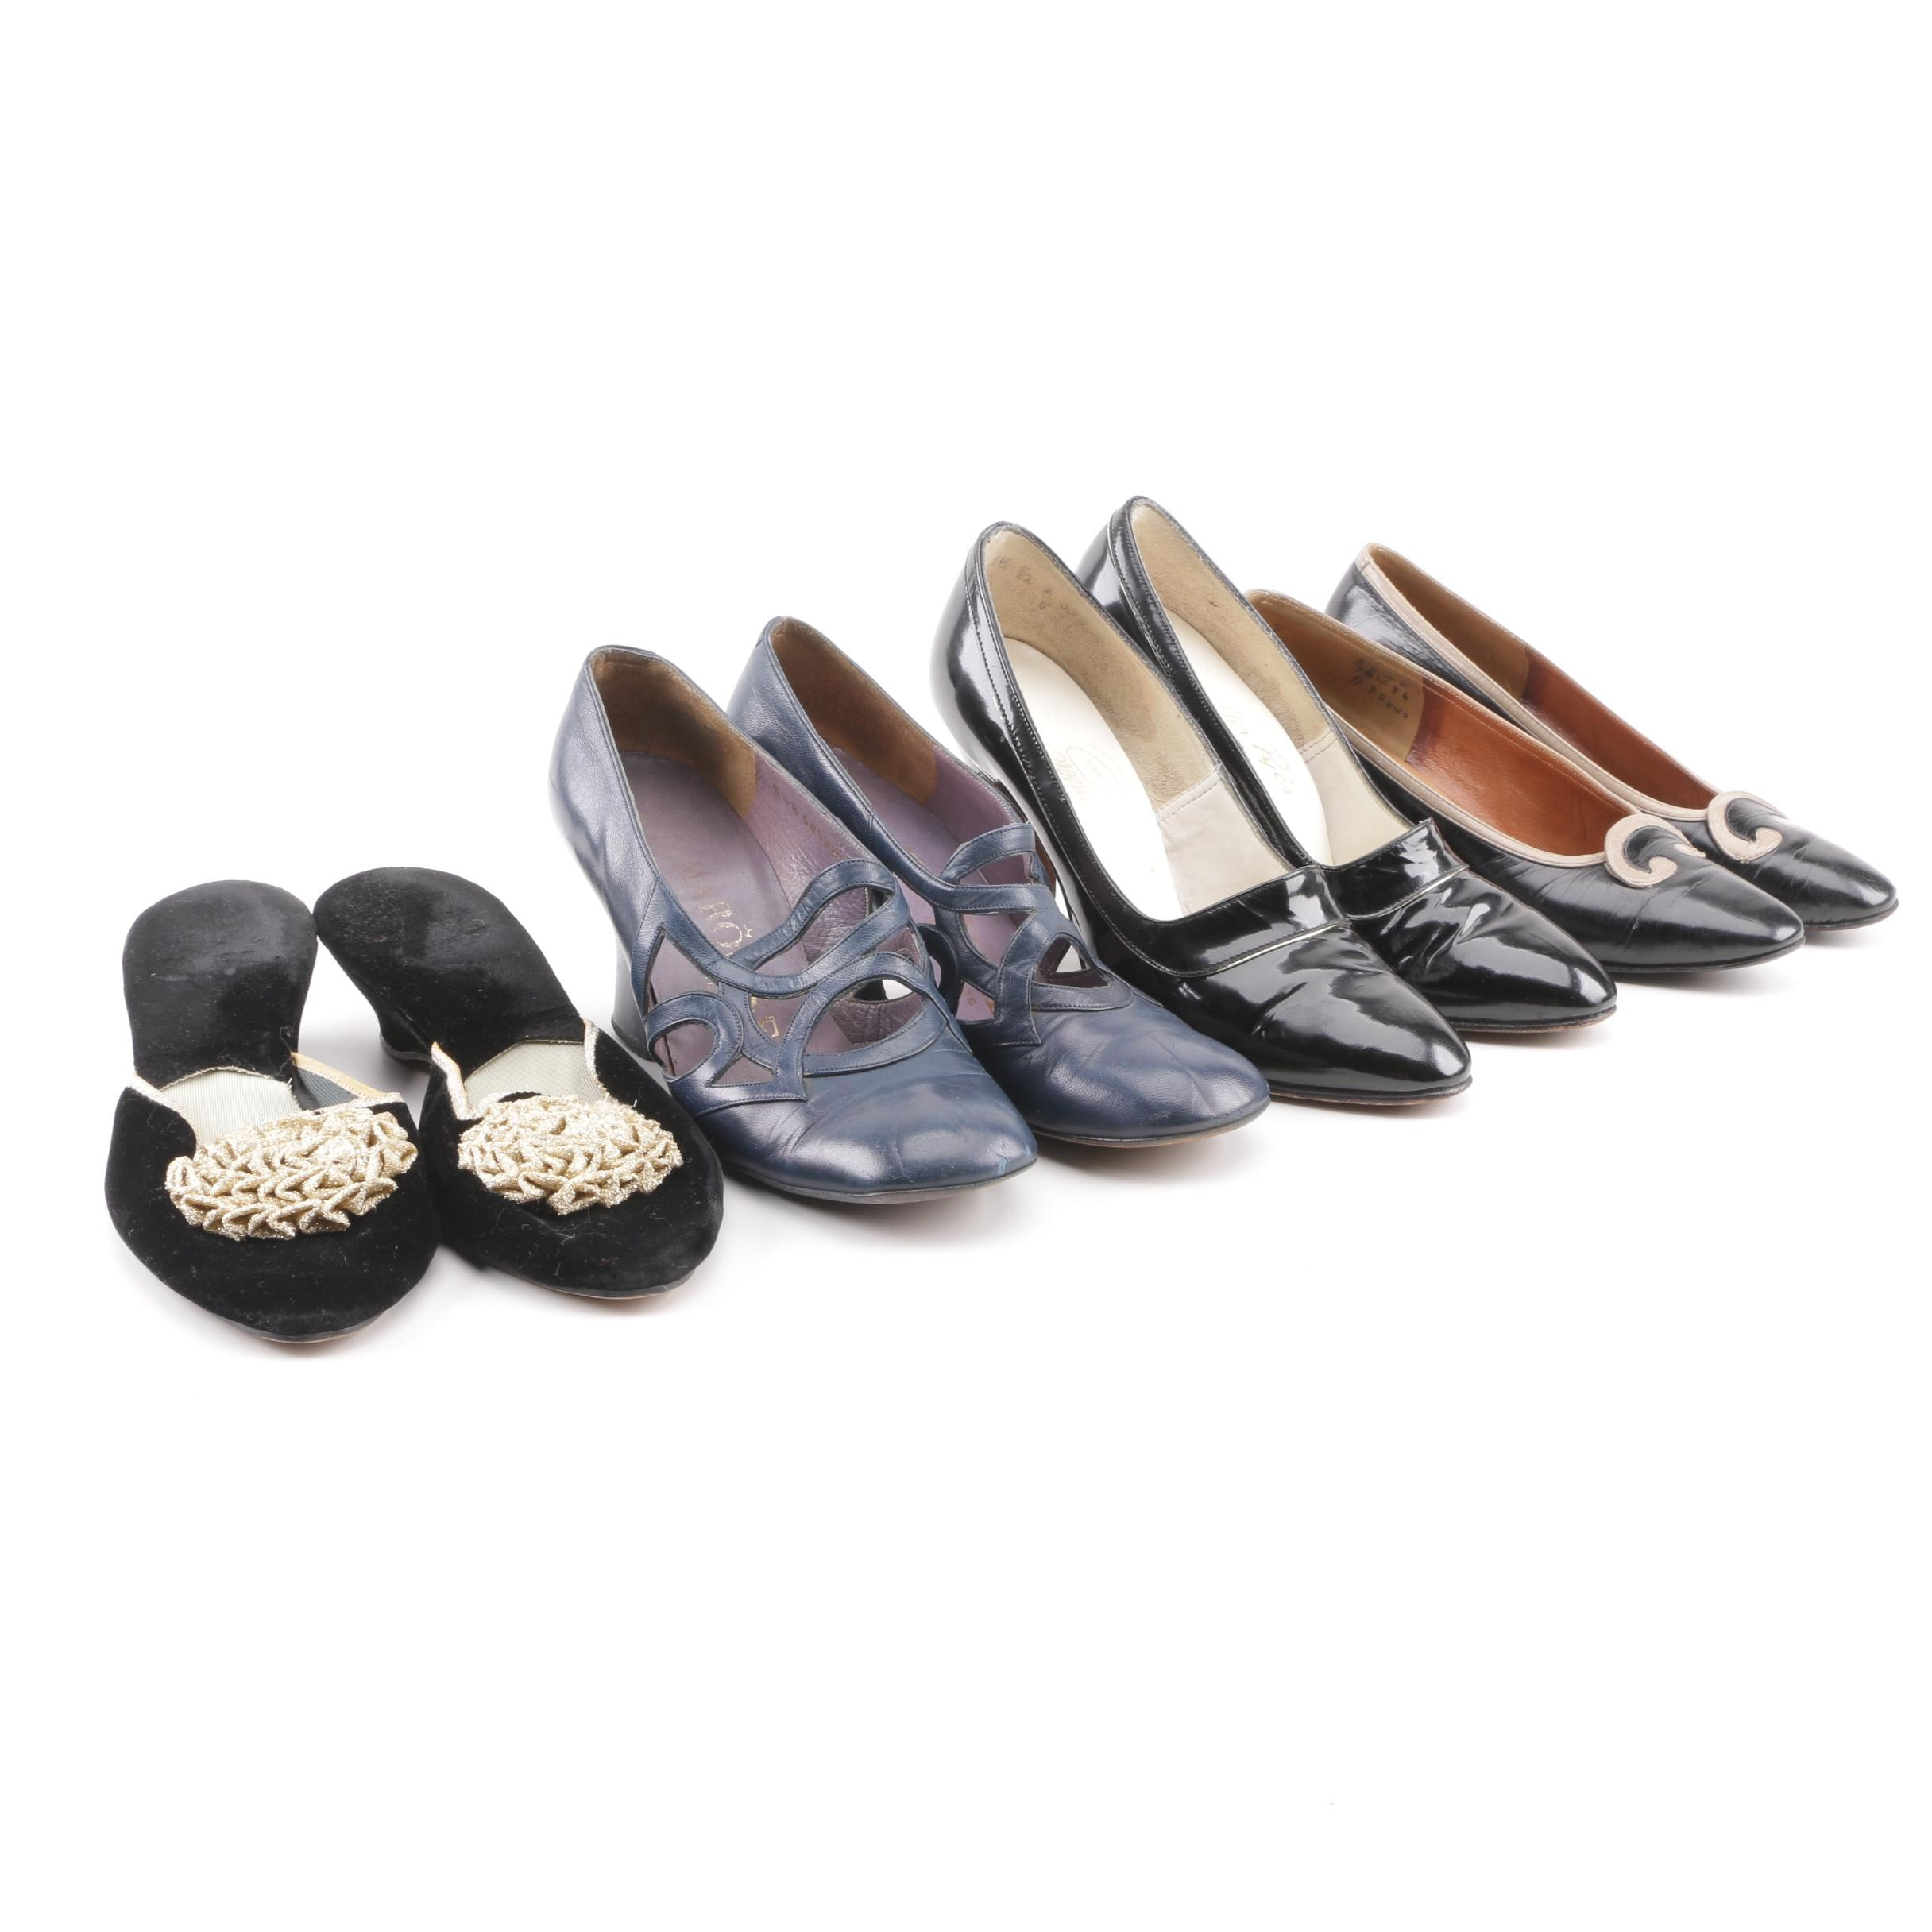 Women's Vintage Pumps and Slides including Johansen, Sakowitz and Marquise